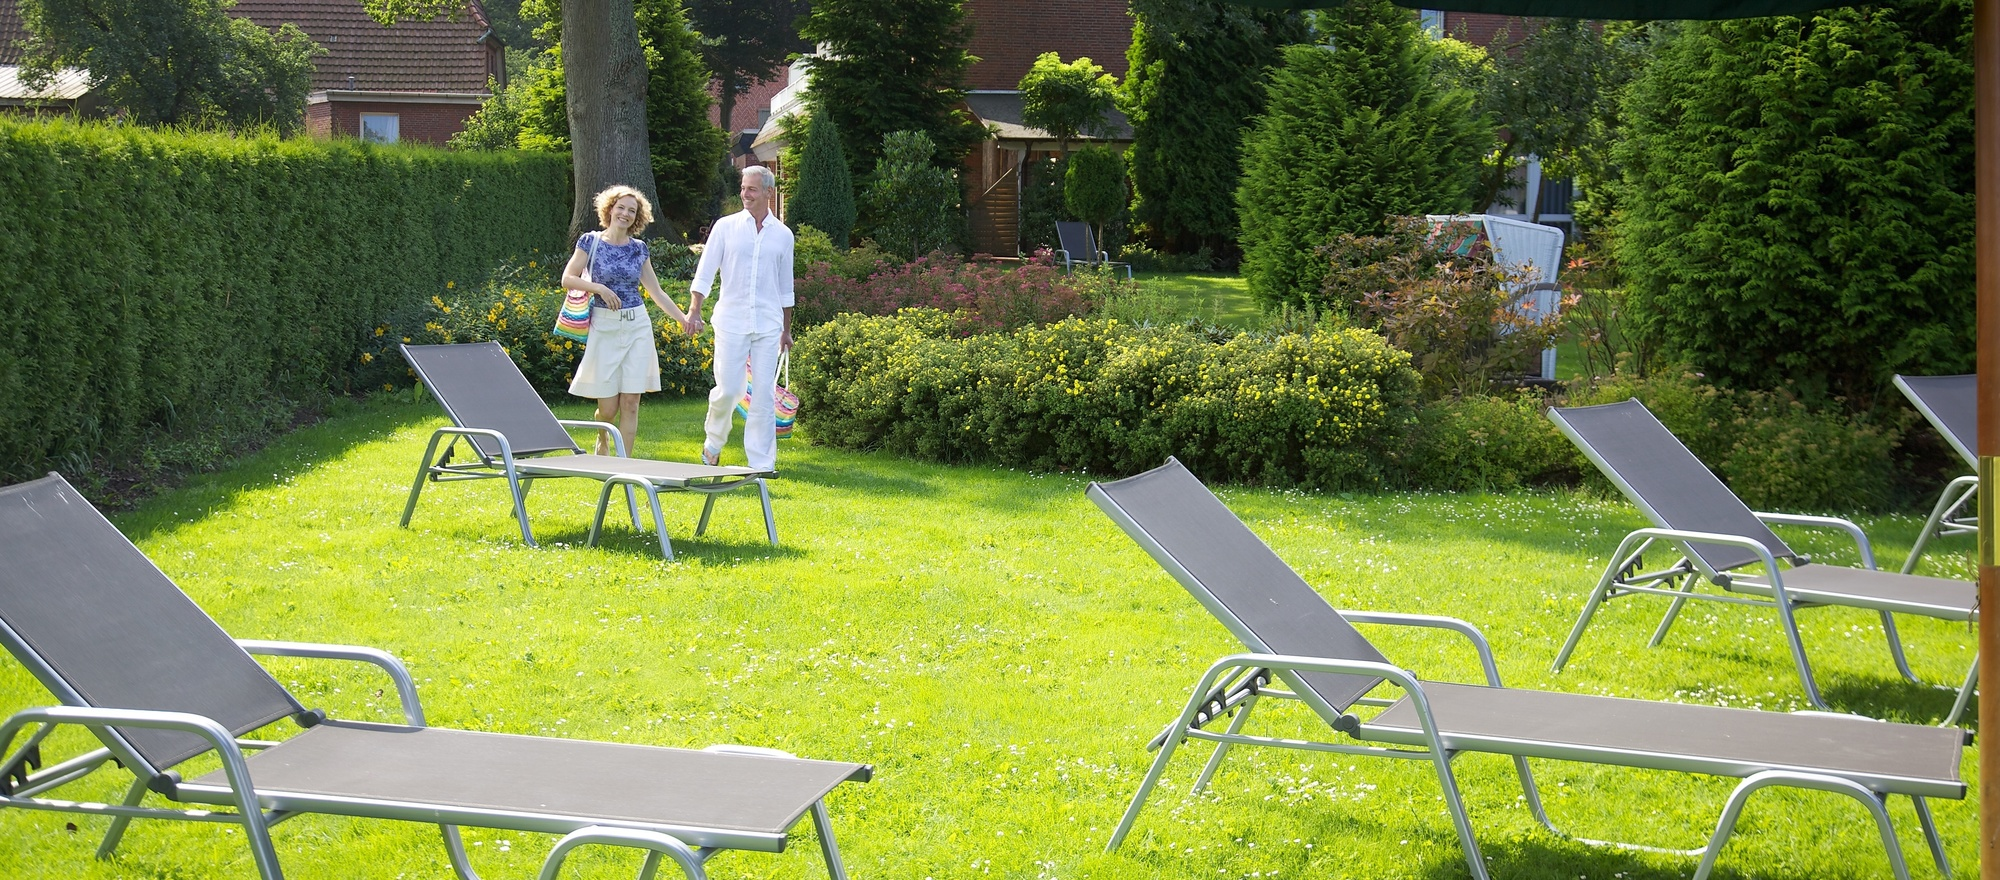 Lounging lawn with sunbeds in the garden of the the 4-star hotel Ringhotel Sellhorn in Hanstedt